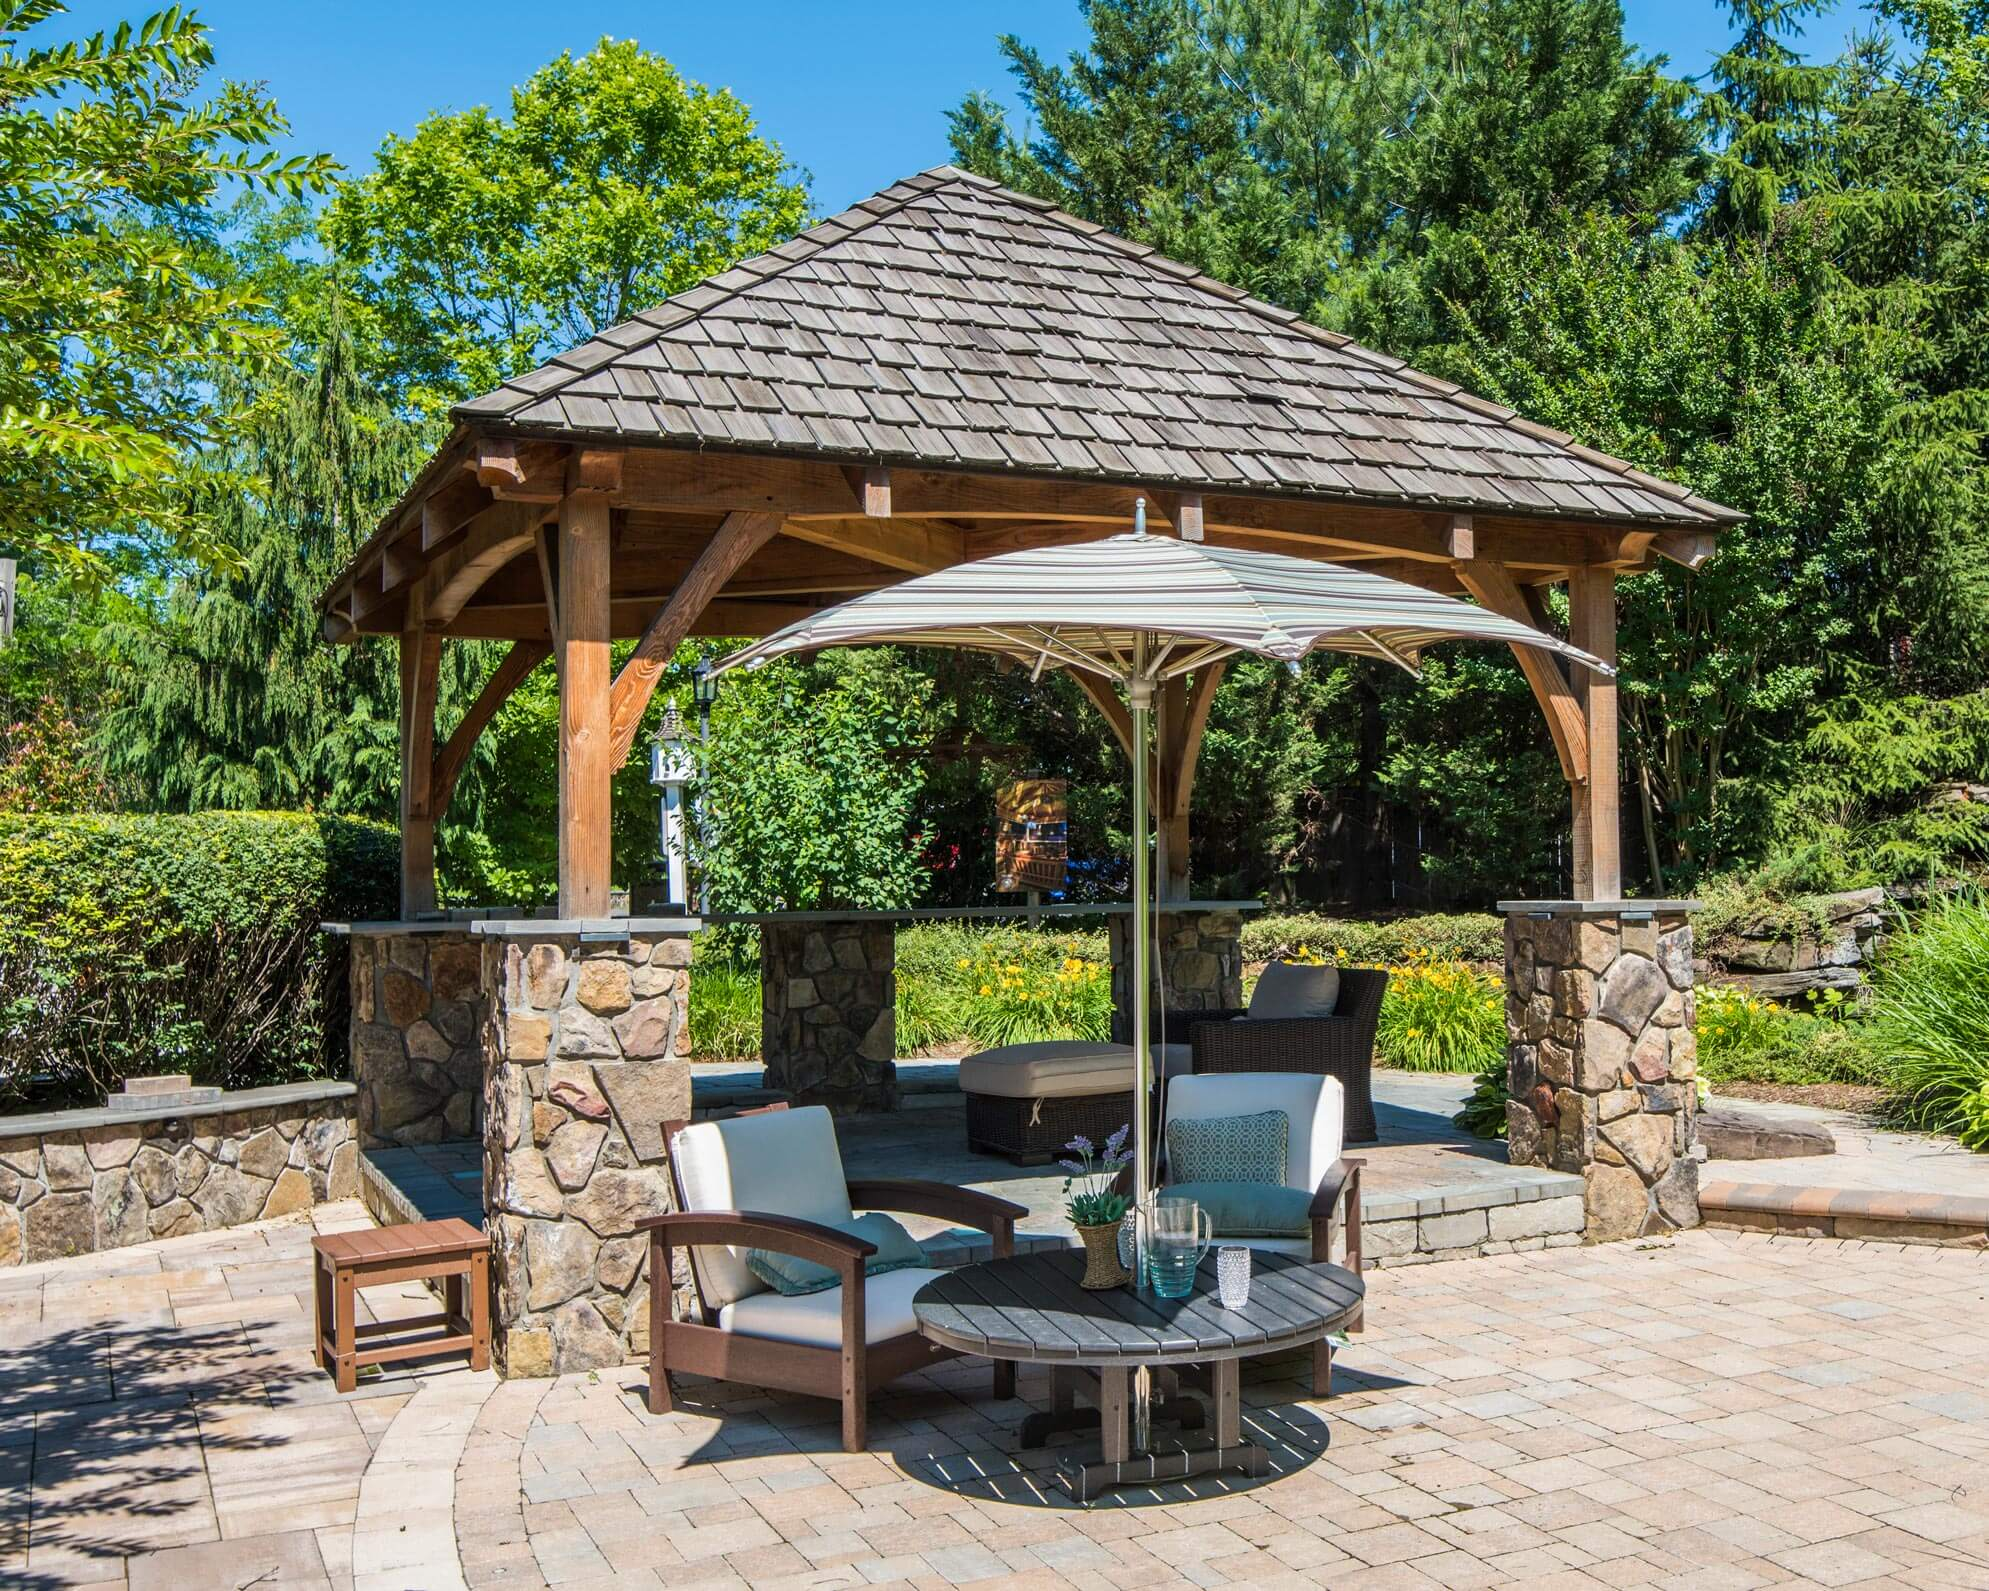 Douglas Fir Pergola  Kit_stone Veneer Columns_Trex Furniture_Hanover Patio_Tuuci